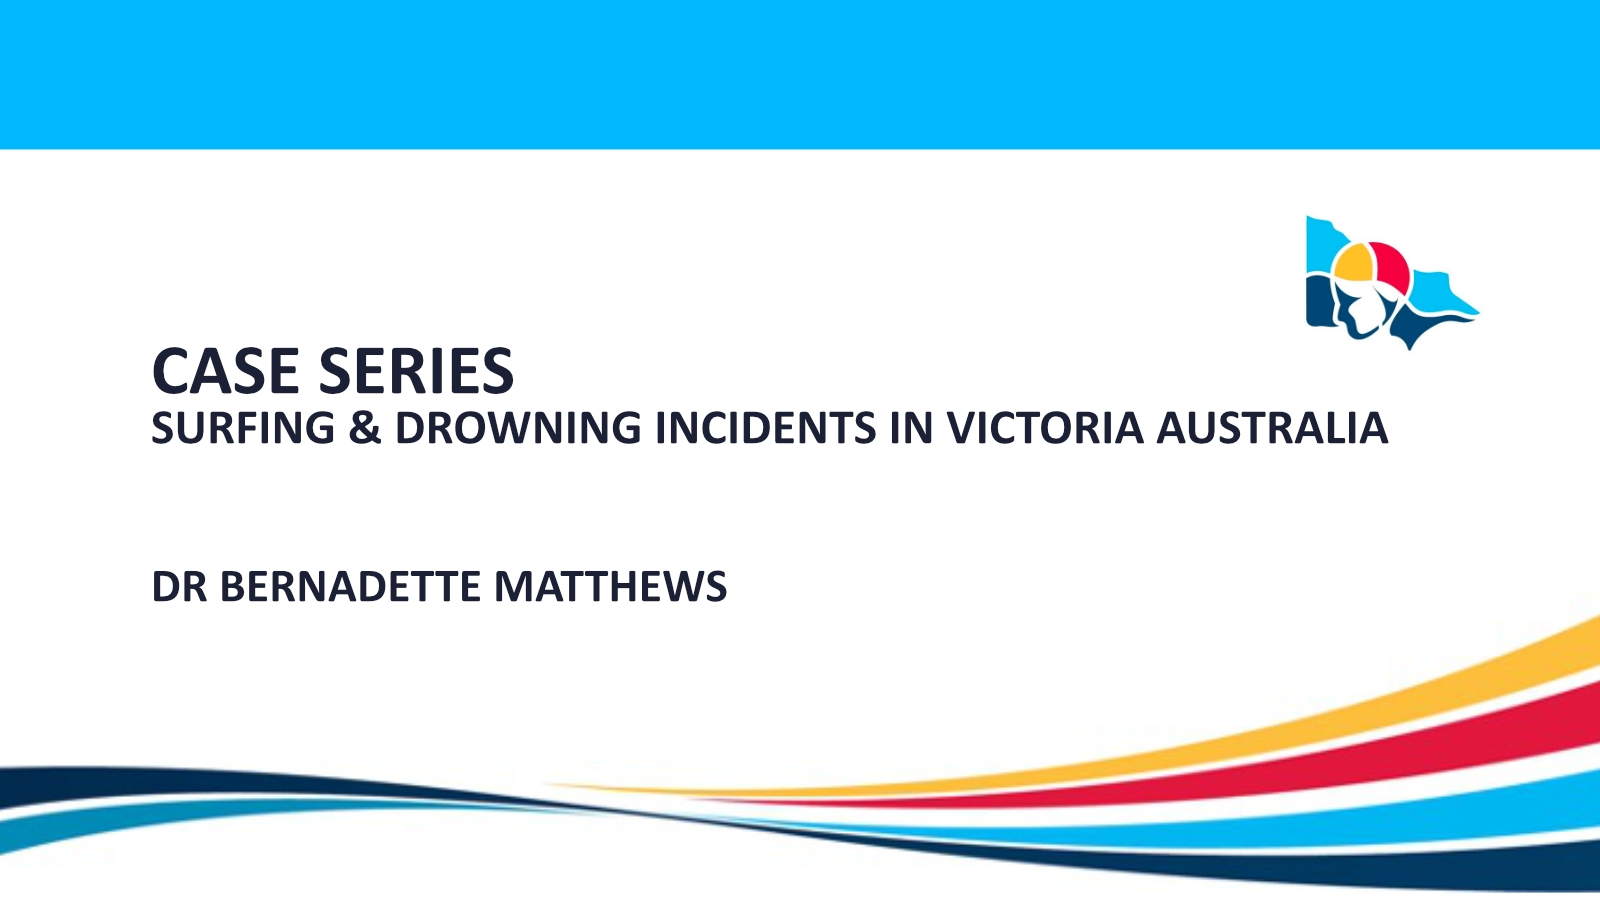 Case series: Surfing & Drowning incidents in Victoria